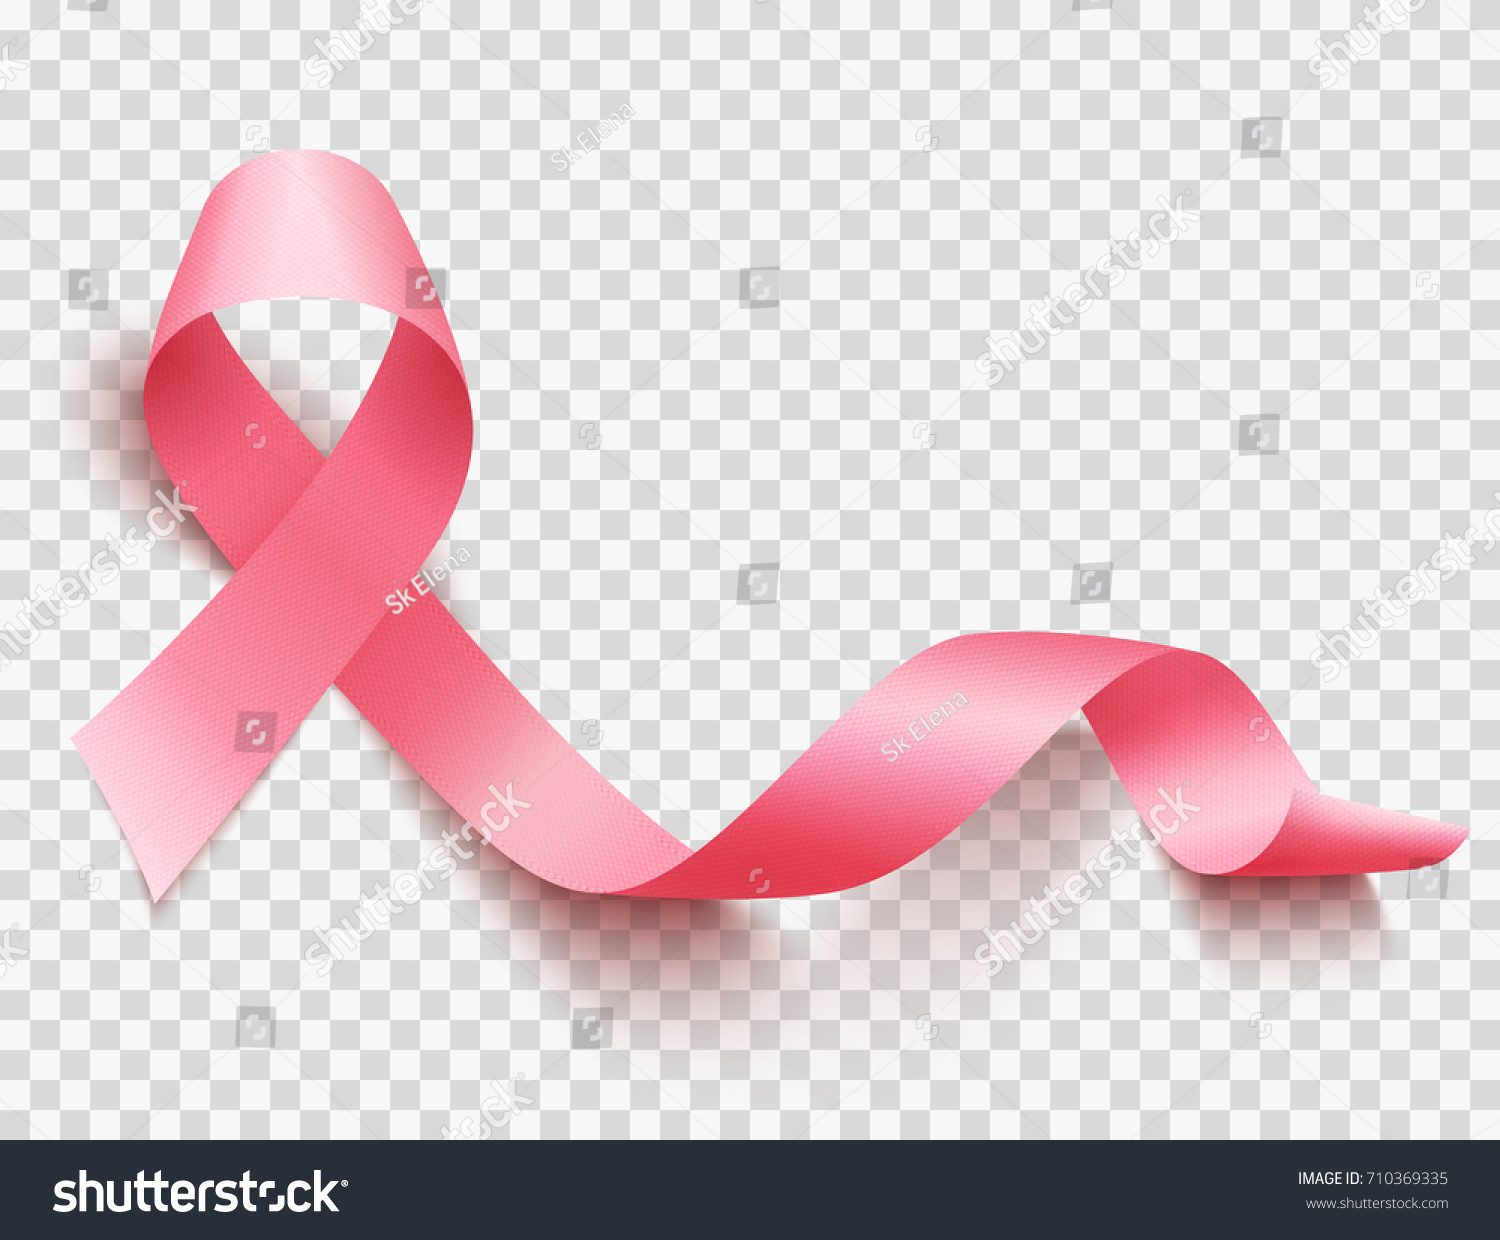 Realistic pink ribbon, breast cancer awareness symbol, vector illustration #710369335